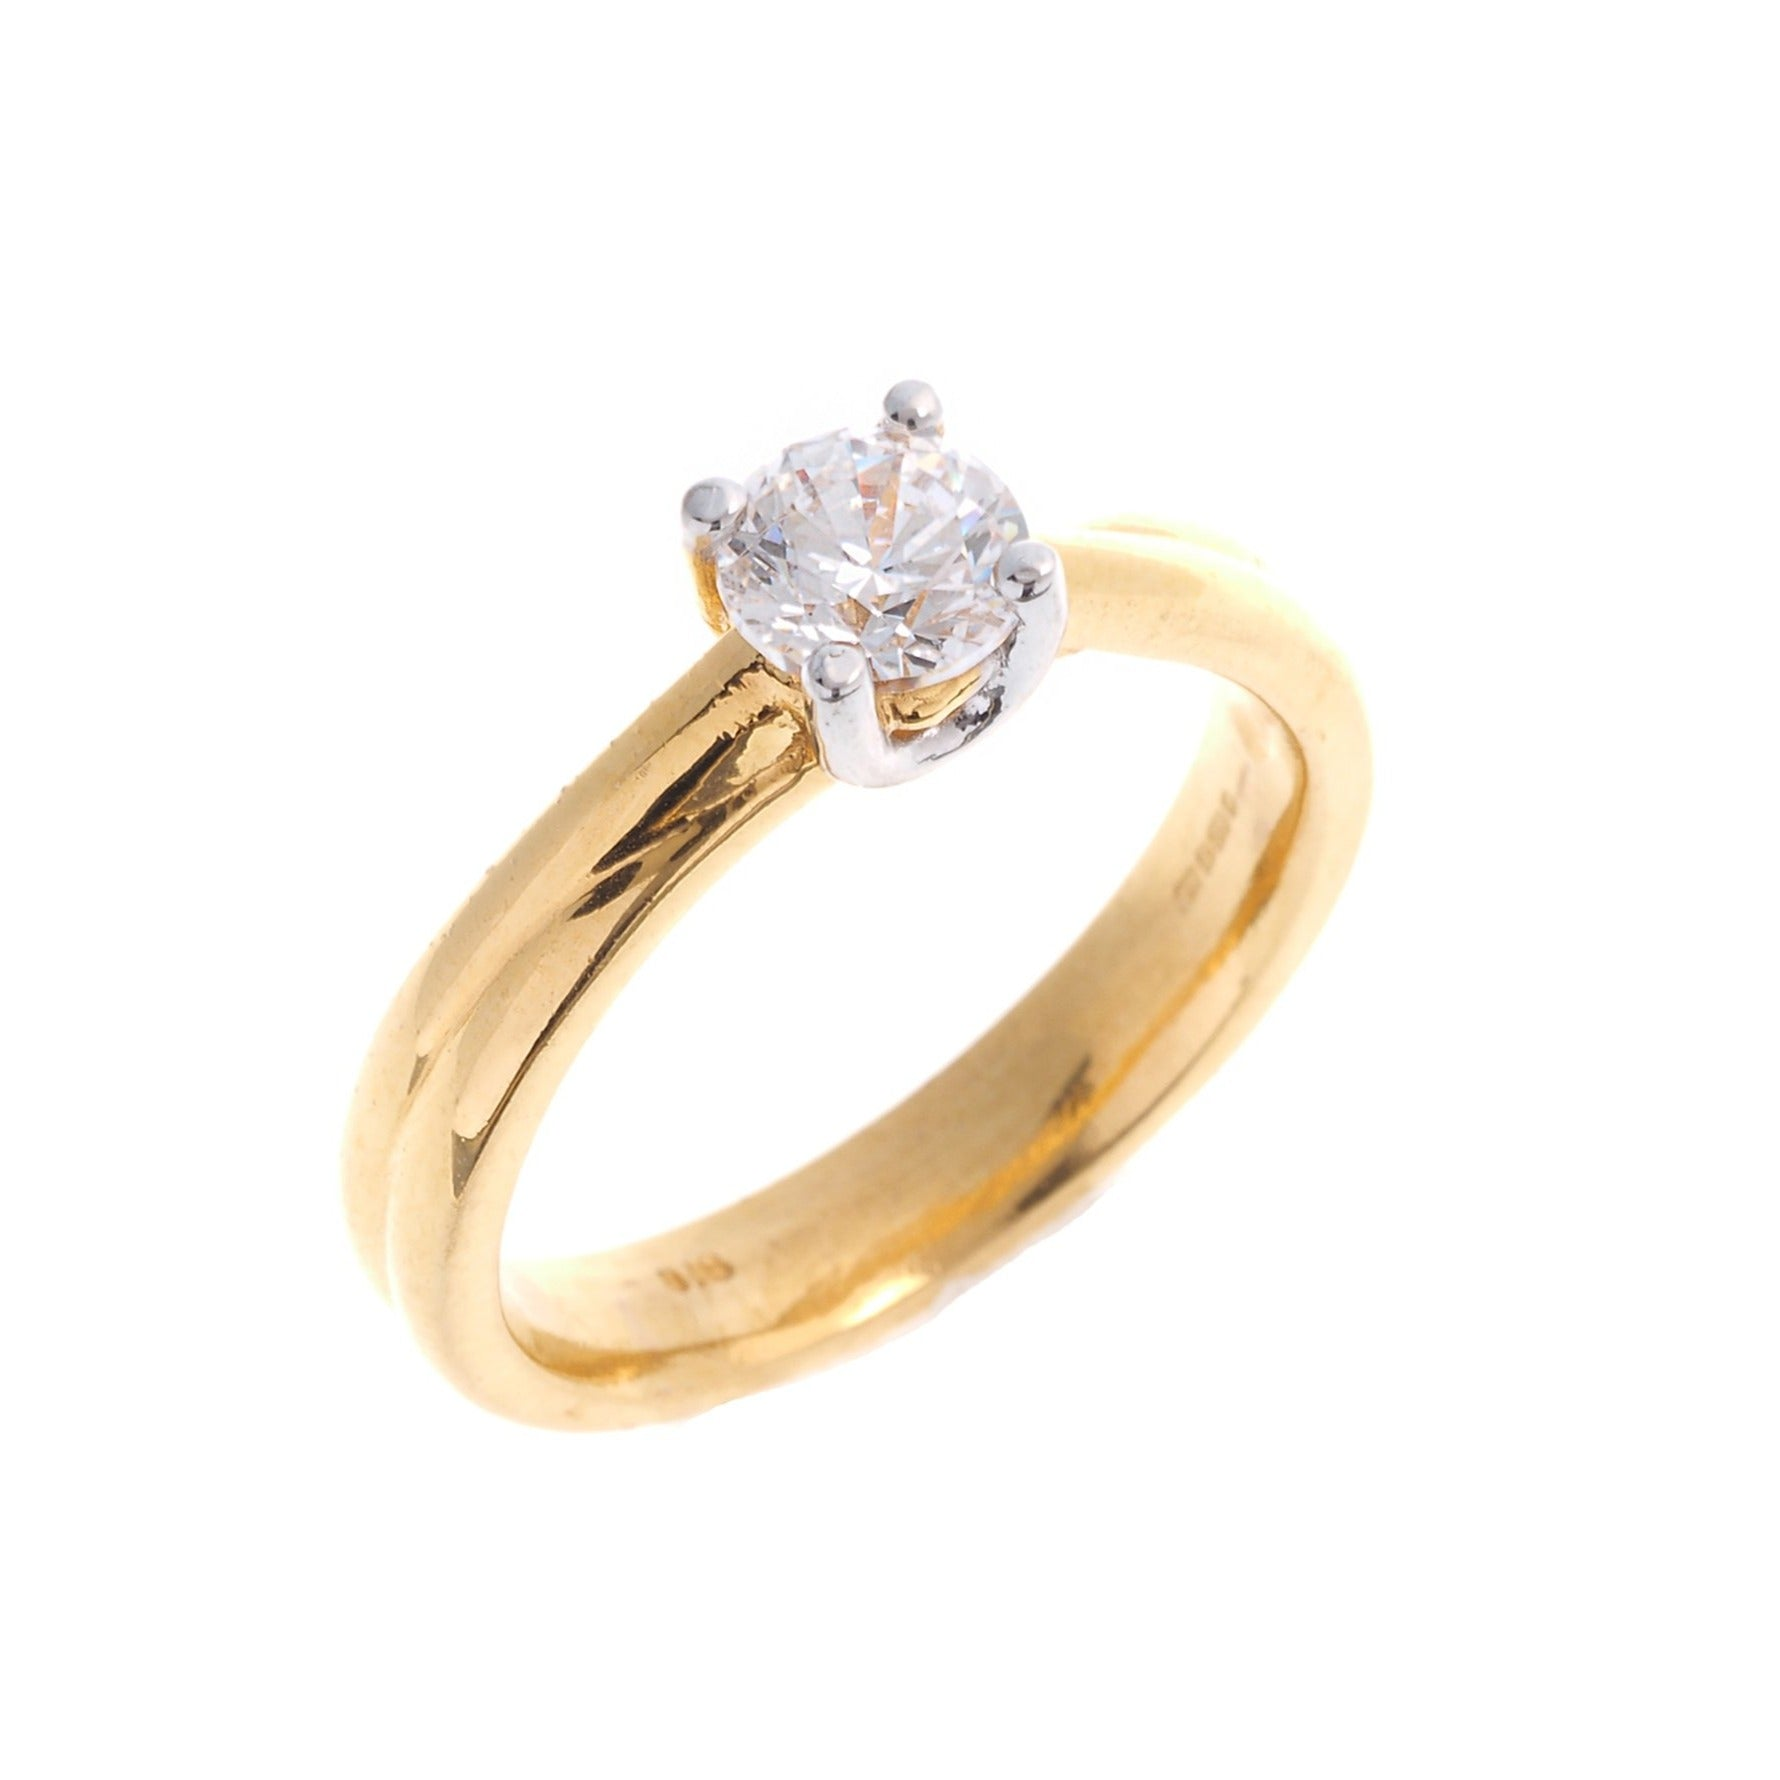 22ct Gold Cubic Zirconia Engagement Ring LR16489